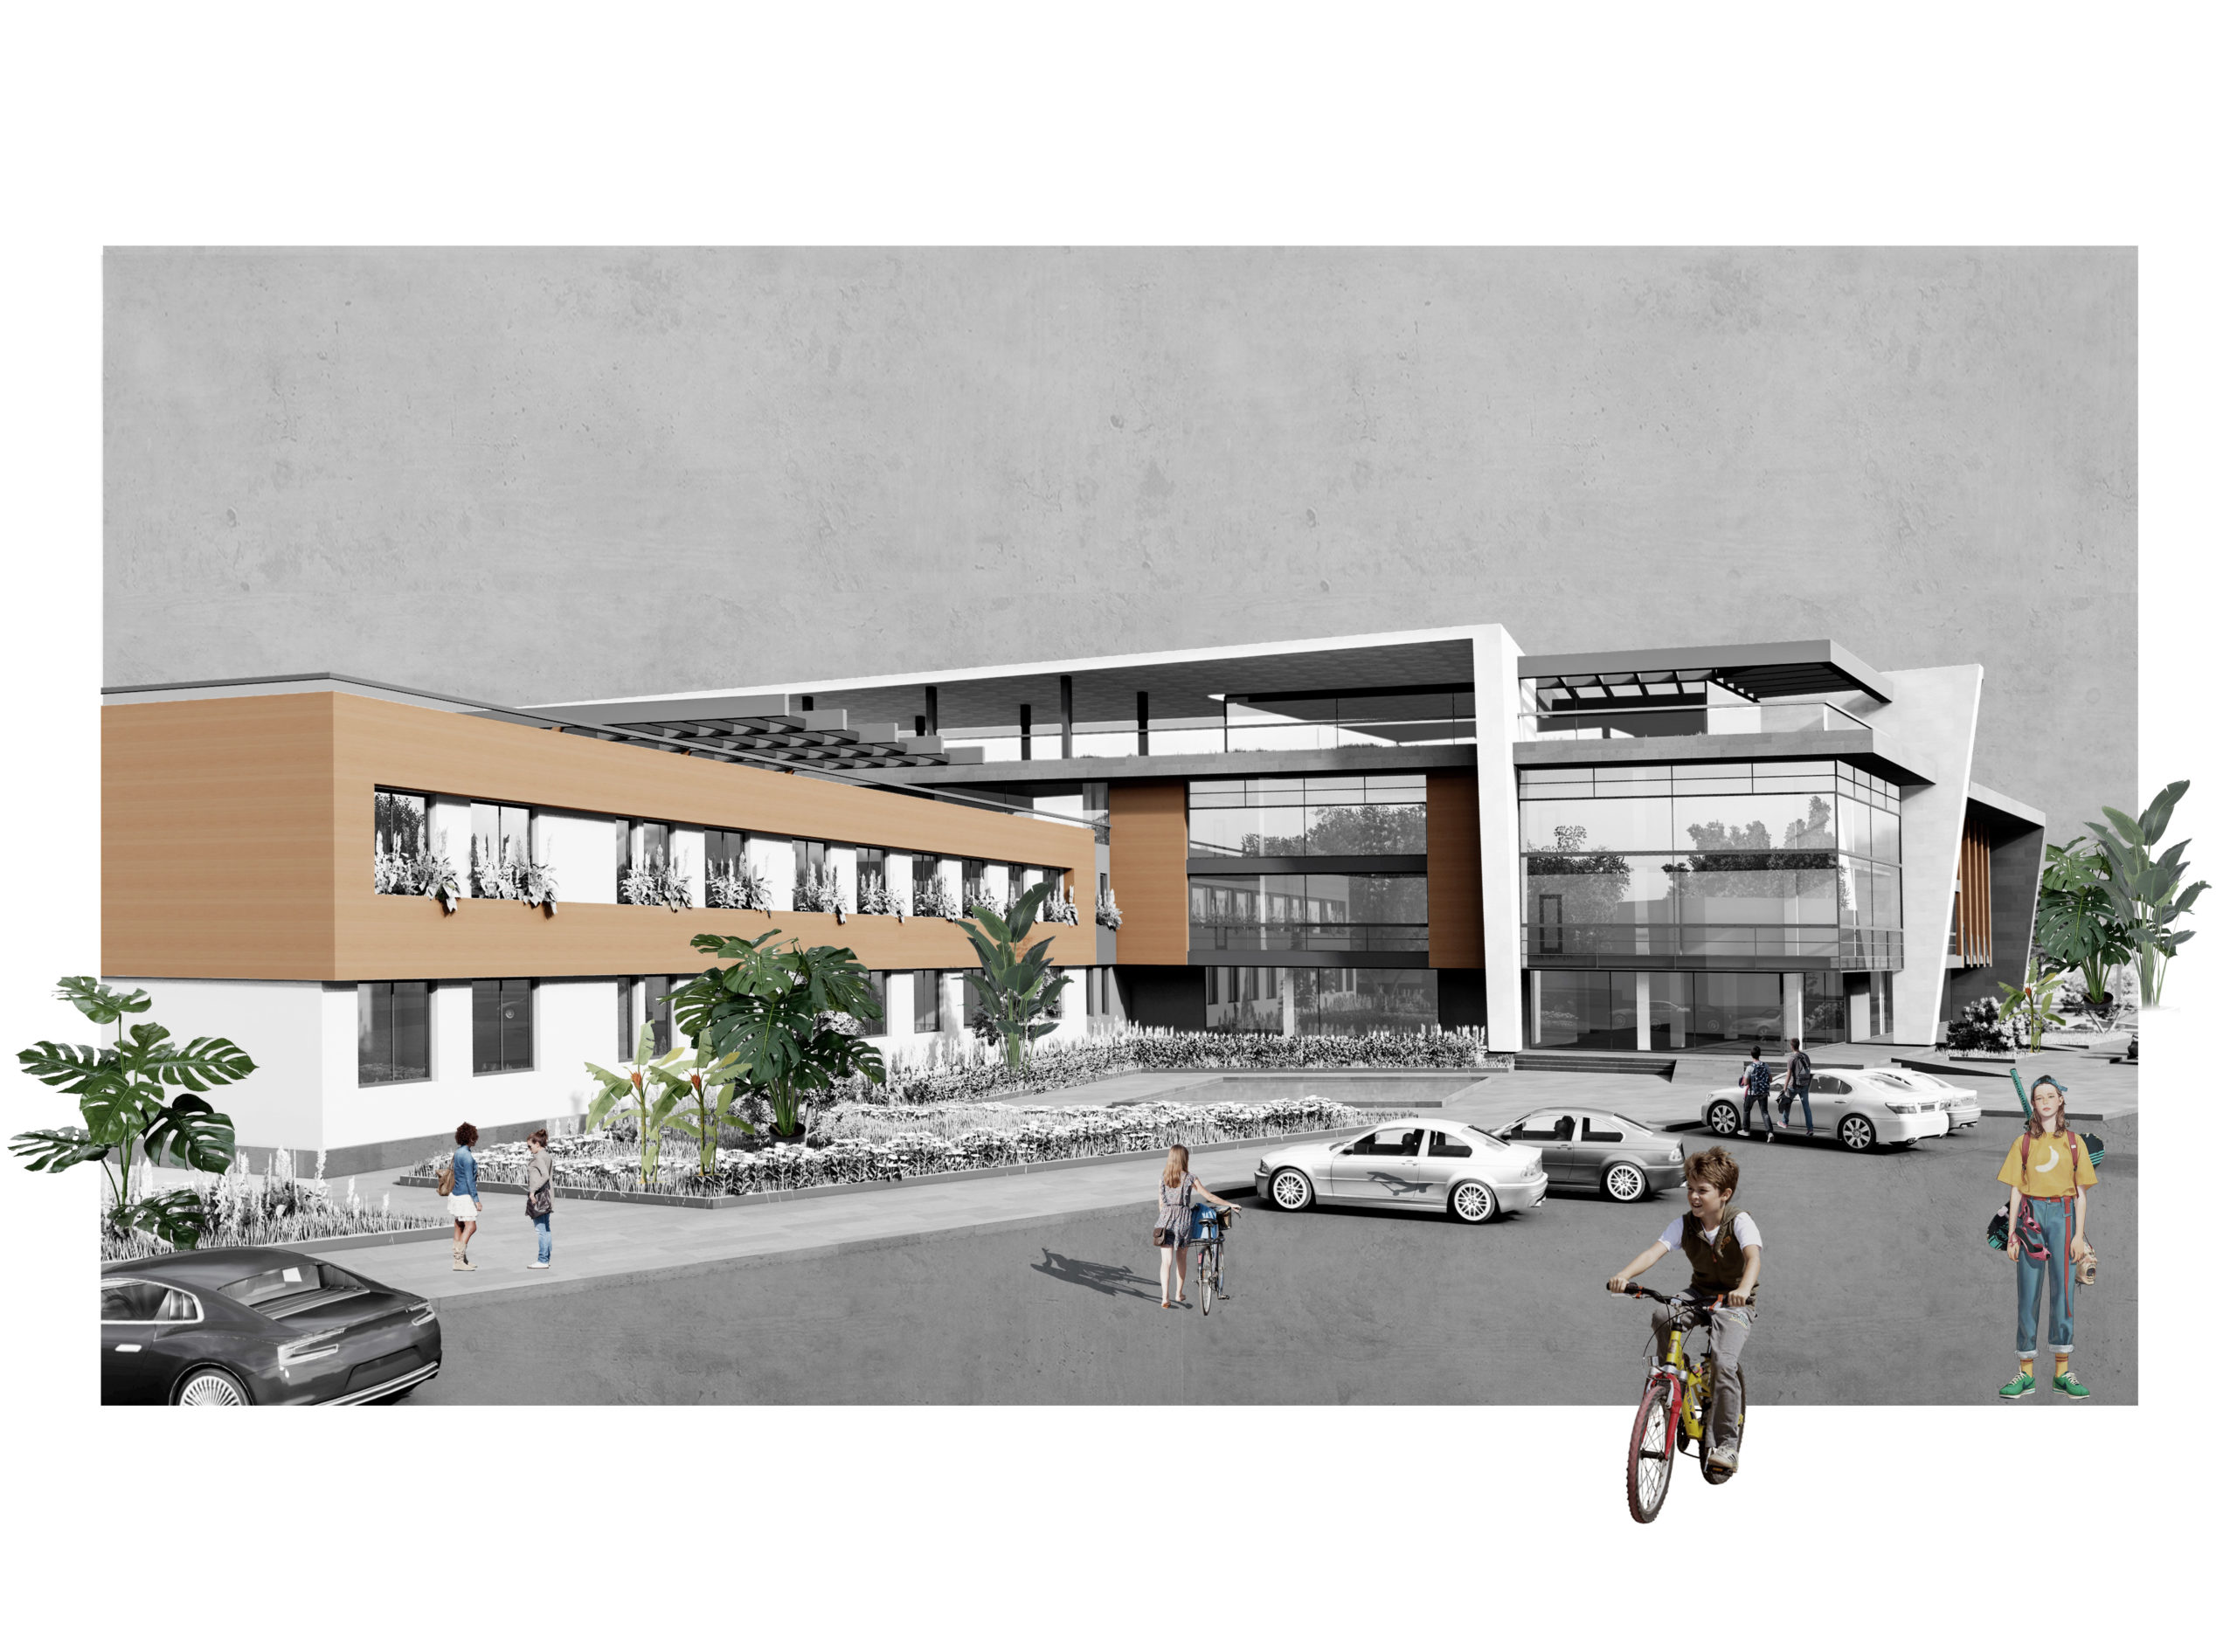 School N 149 Renovation and rethinking project - featured image